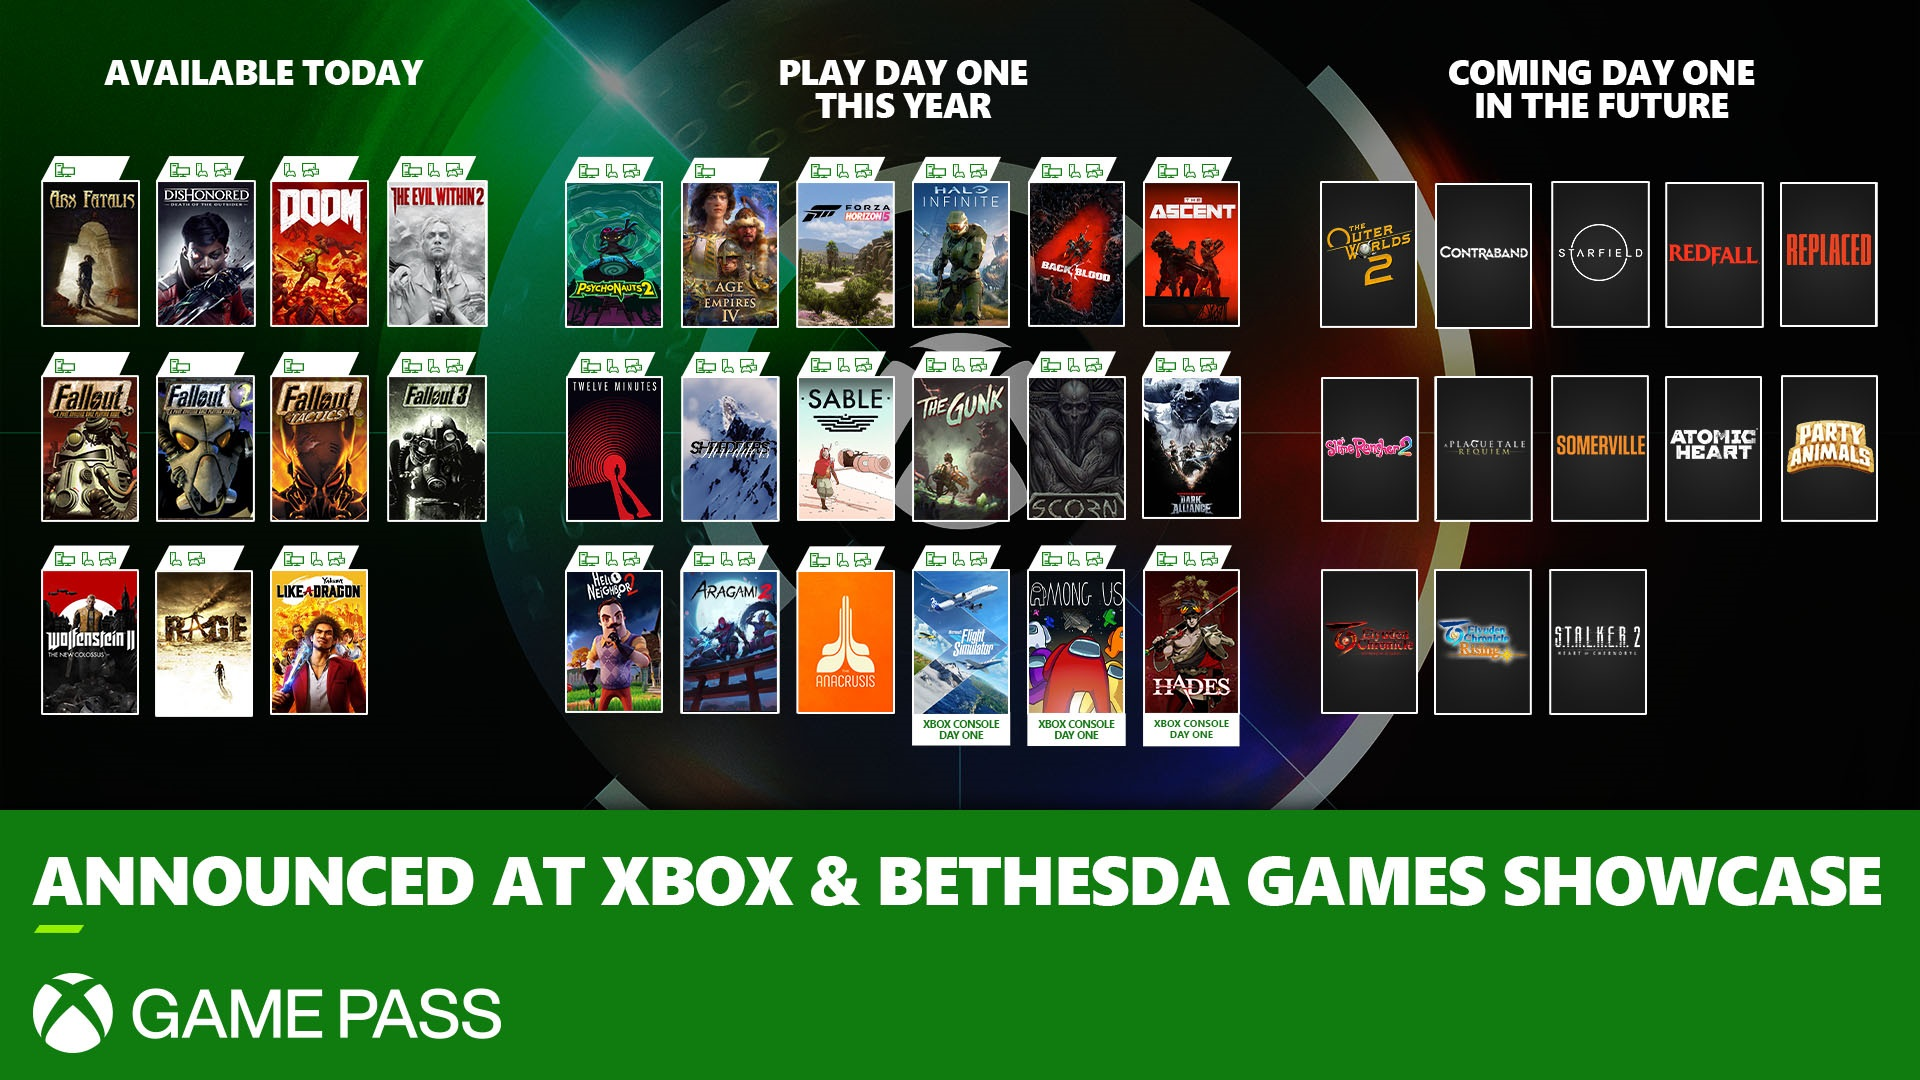 More Bethesda games are coming to Xbox Game Pass